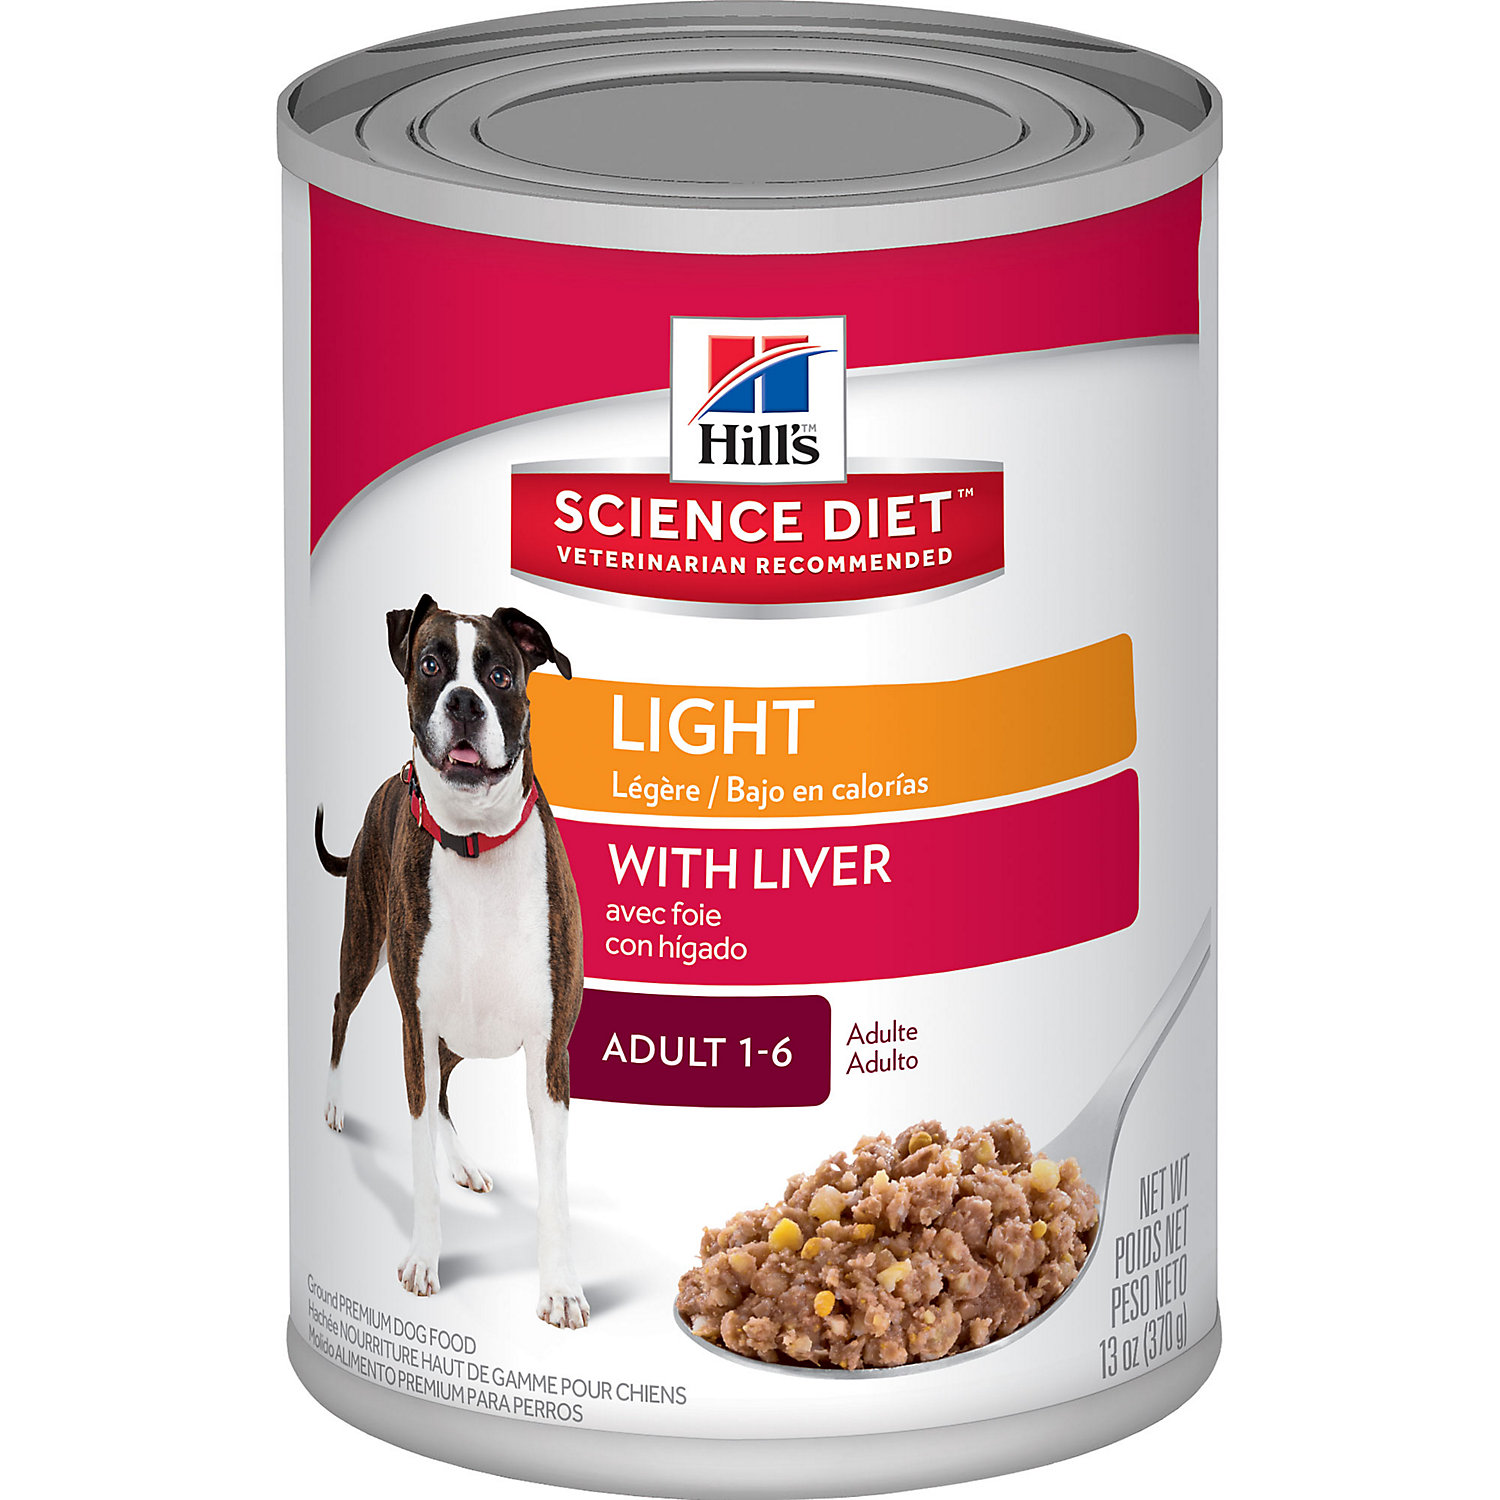 Science Diet Light Canned Dog Food